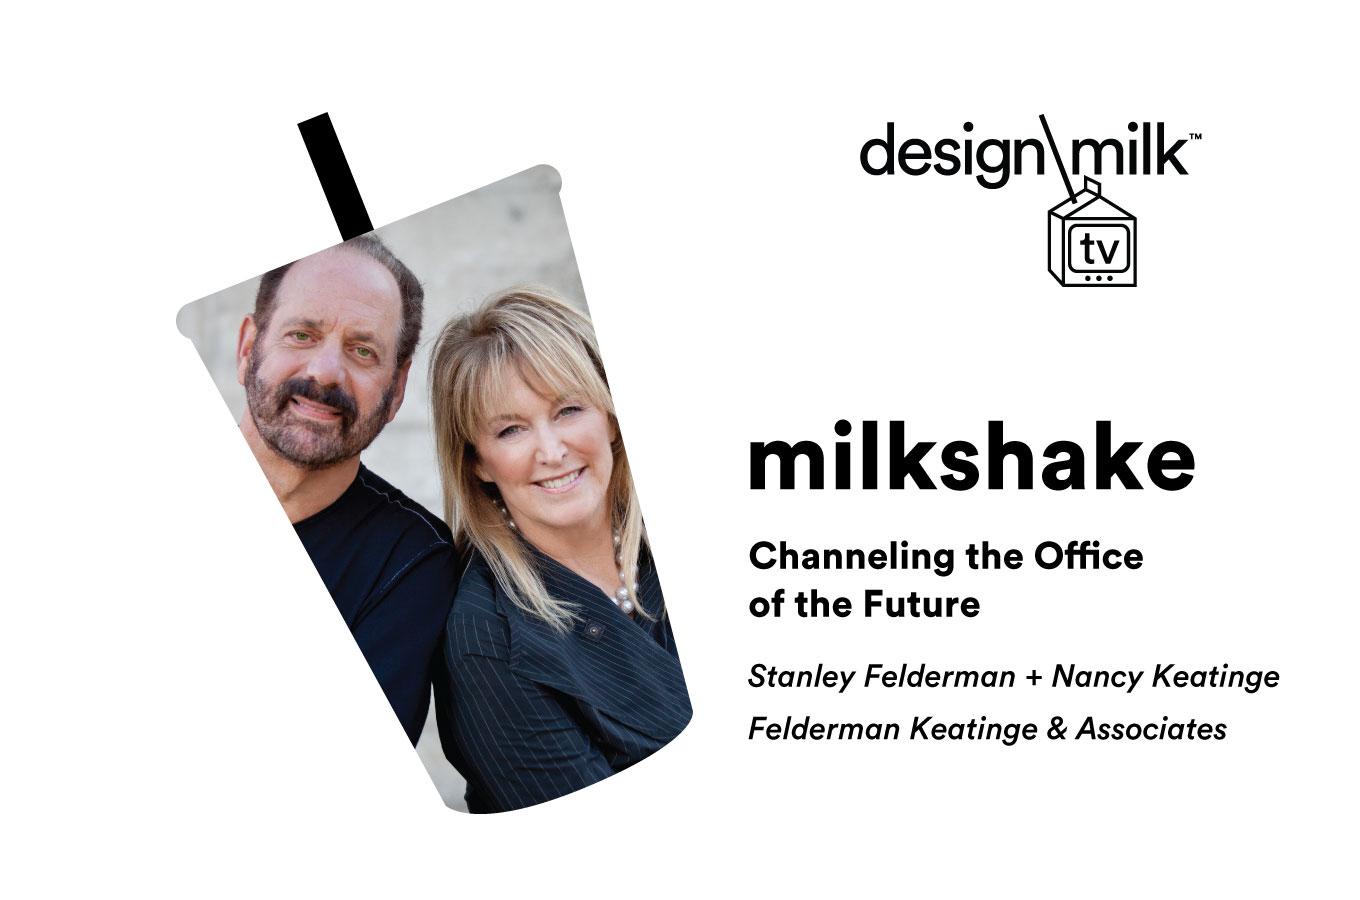 DMTV Milkshake: FKA on Channeling the Office of the Future